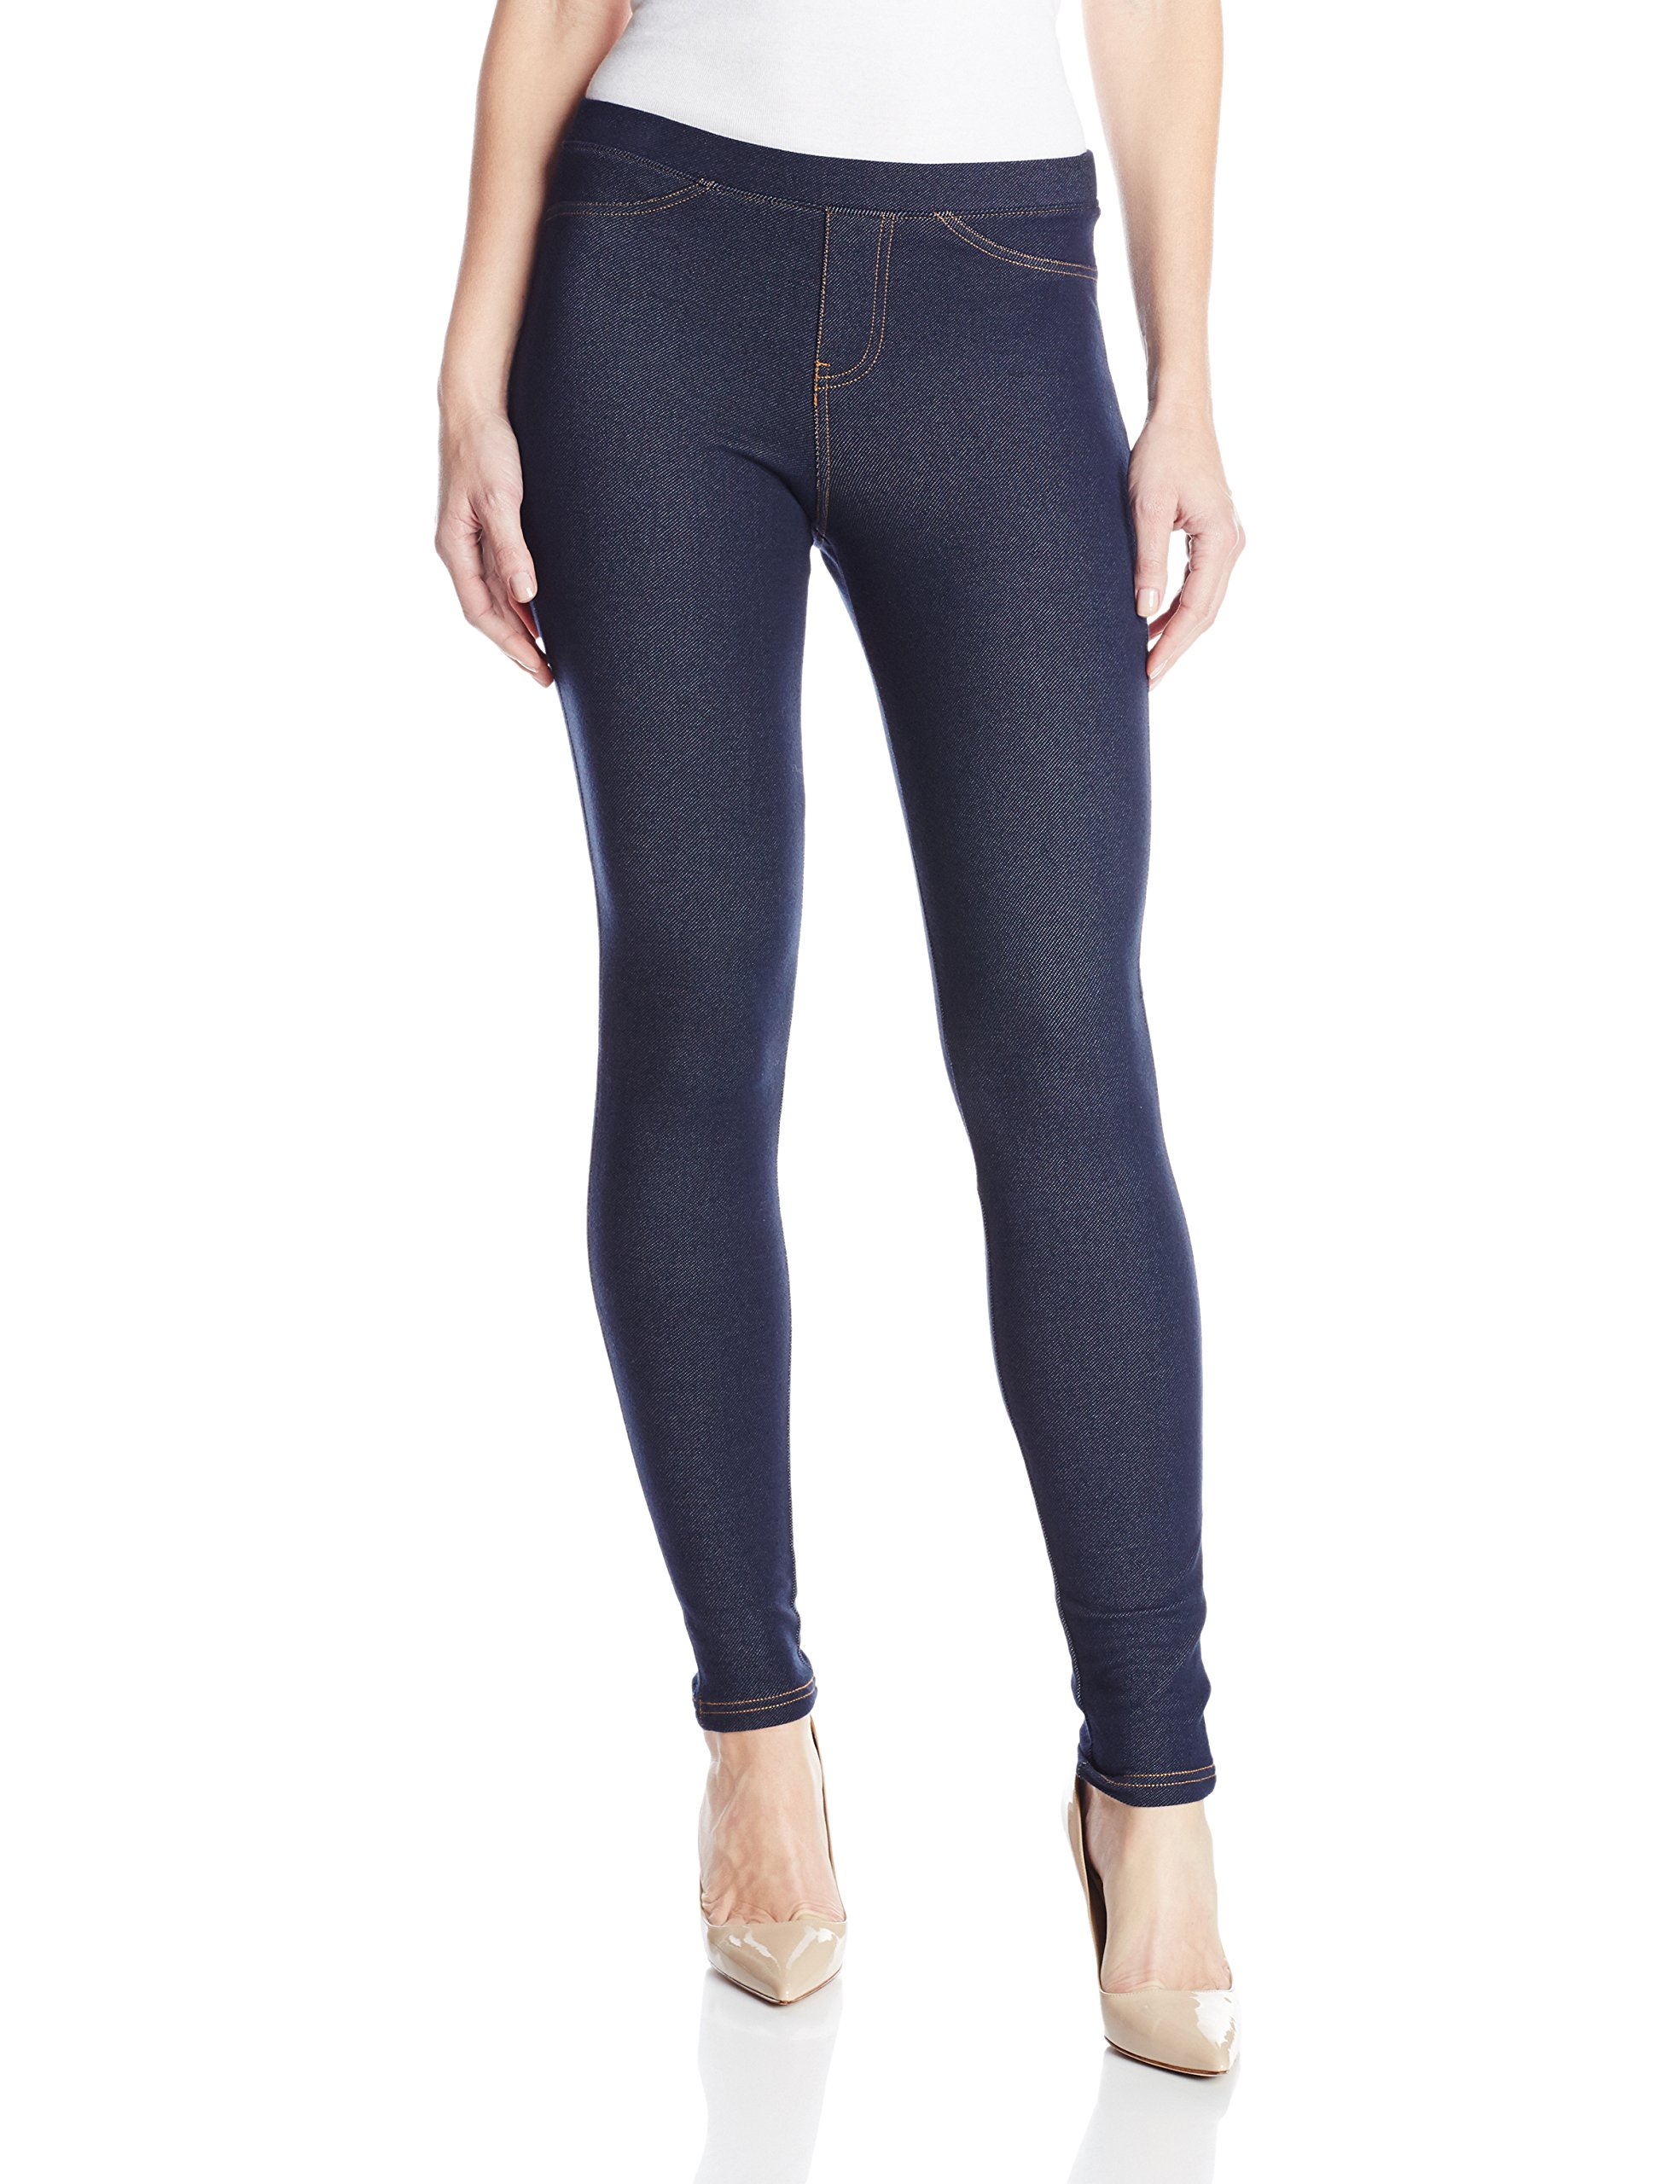 No Nonsense Women's Legging, Dark Denim, Large